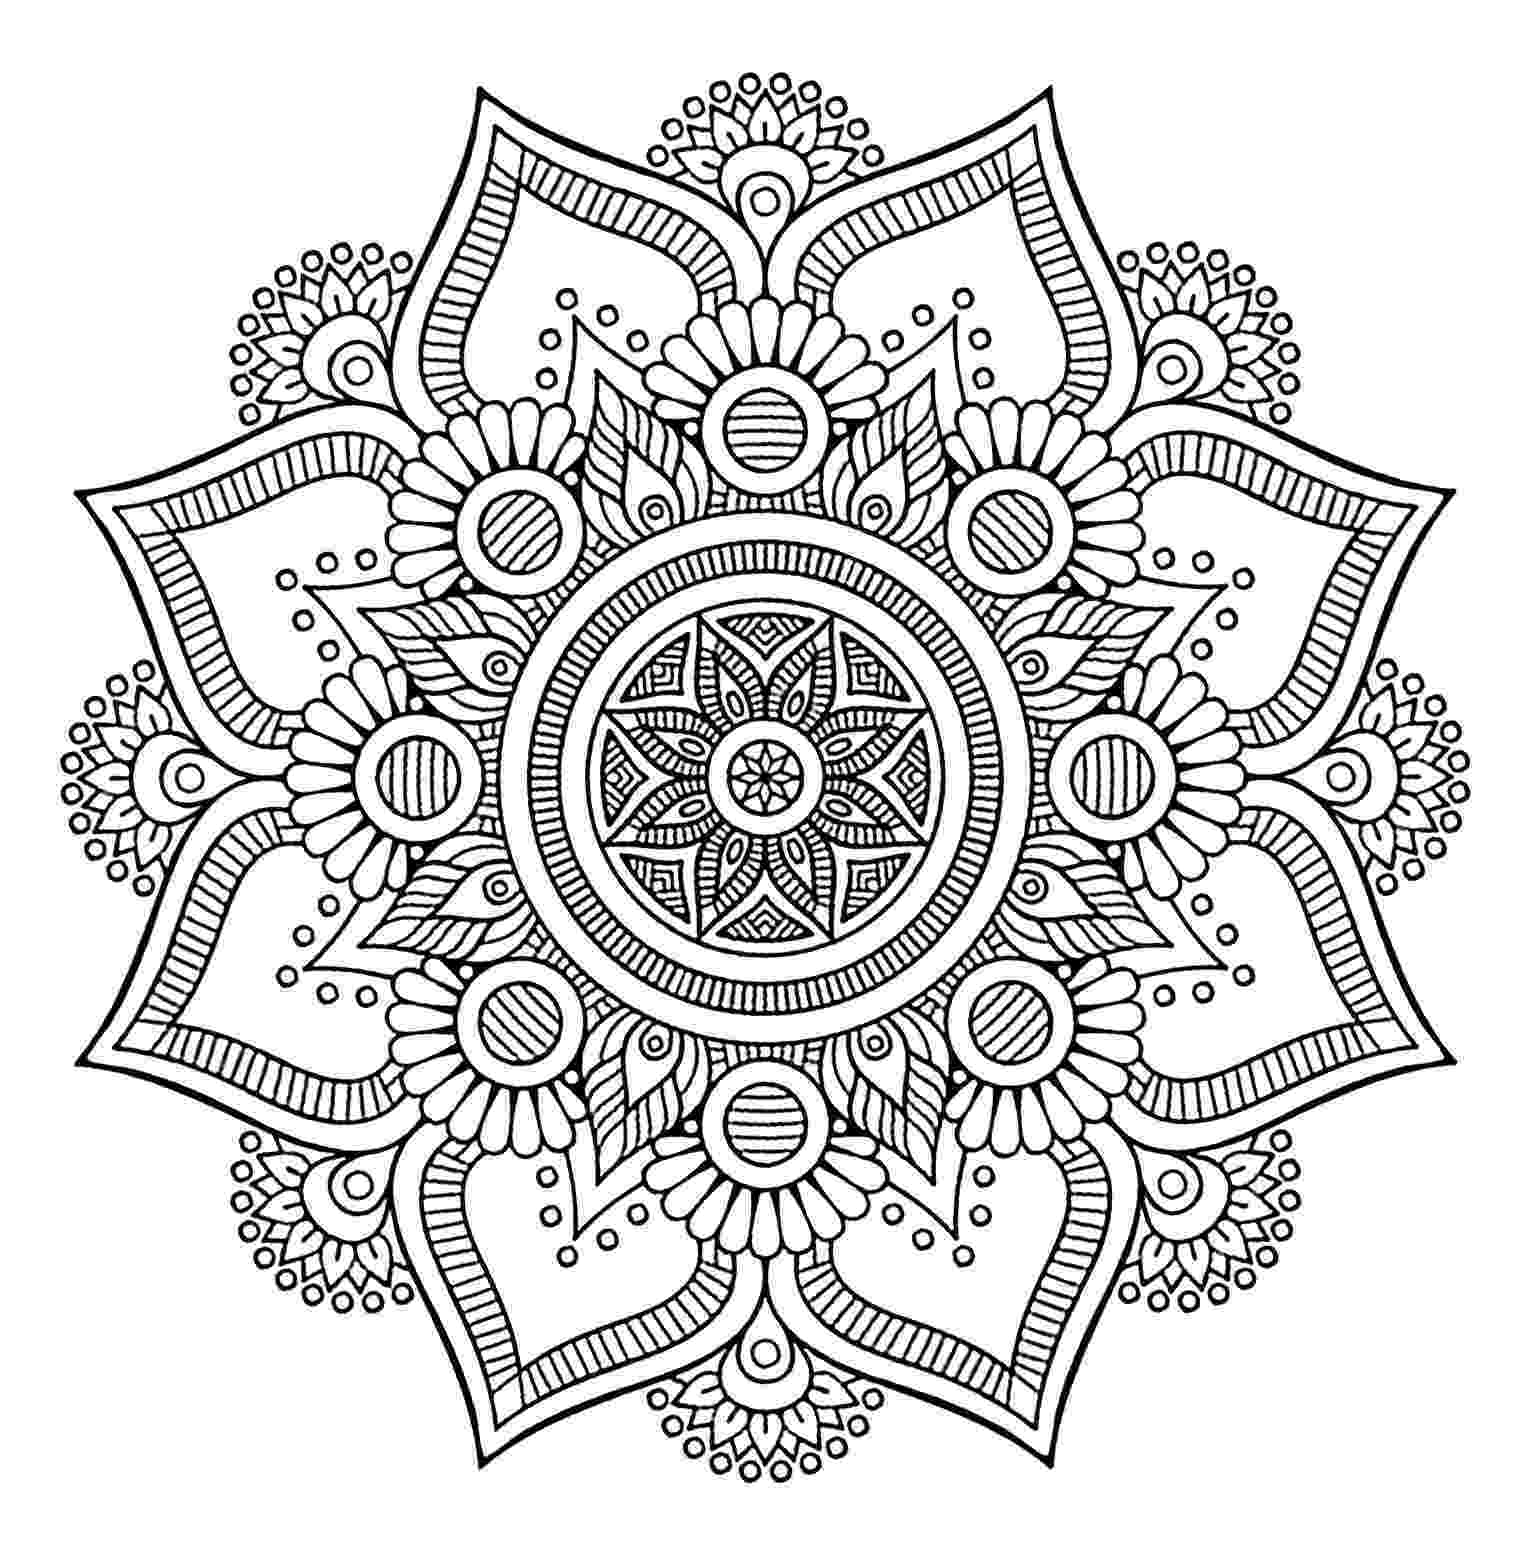 mandala coloring pages for adults free animal mandala coloring pages best coloring pages for kids coloring mandala free adults for pages